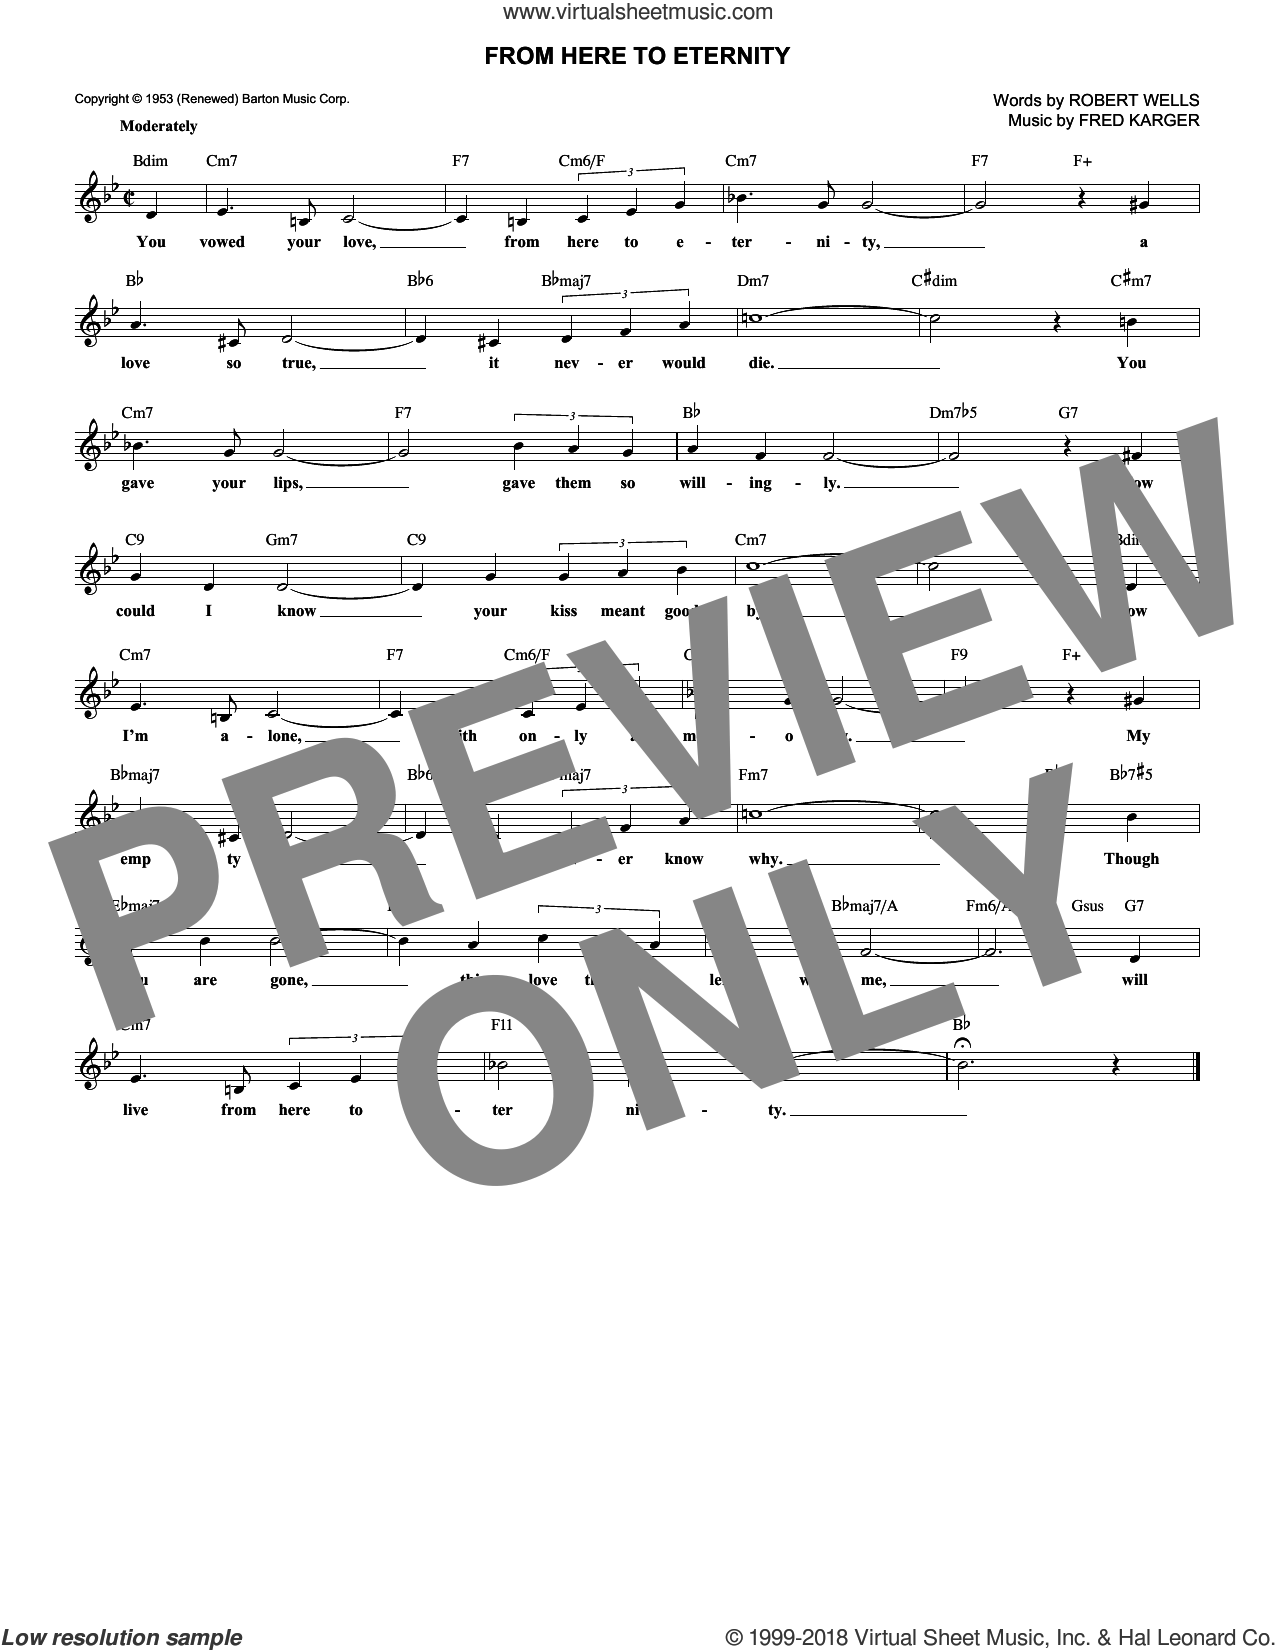 From Here To Eternity sheet music for voice and other instruments (fake book) by Frank Sinatra, Fred Karger and Robert Wells, intermediate skill level